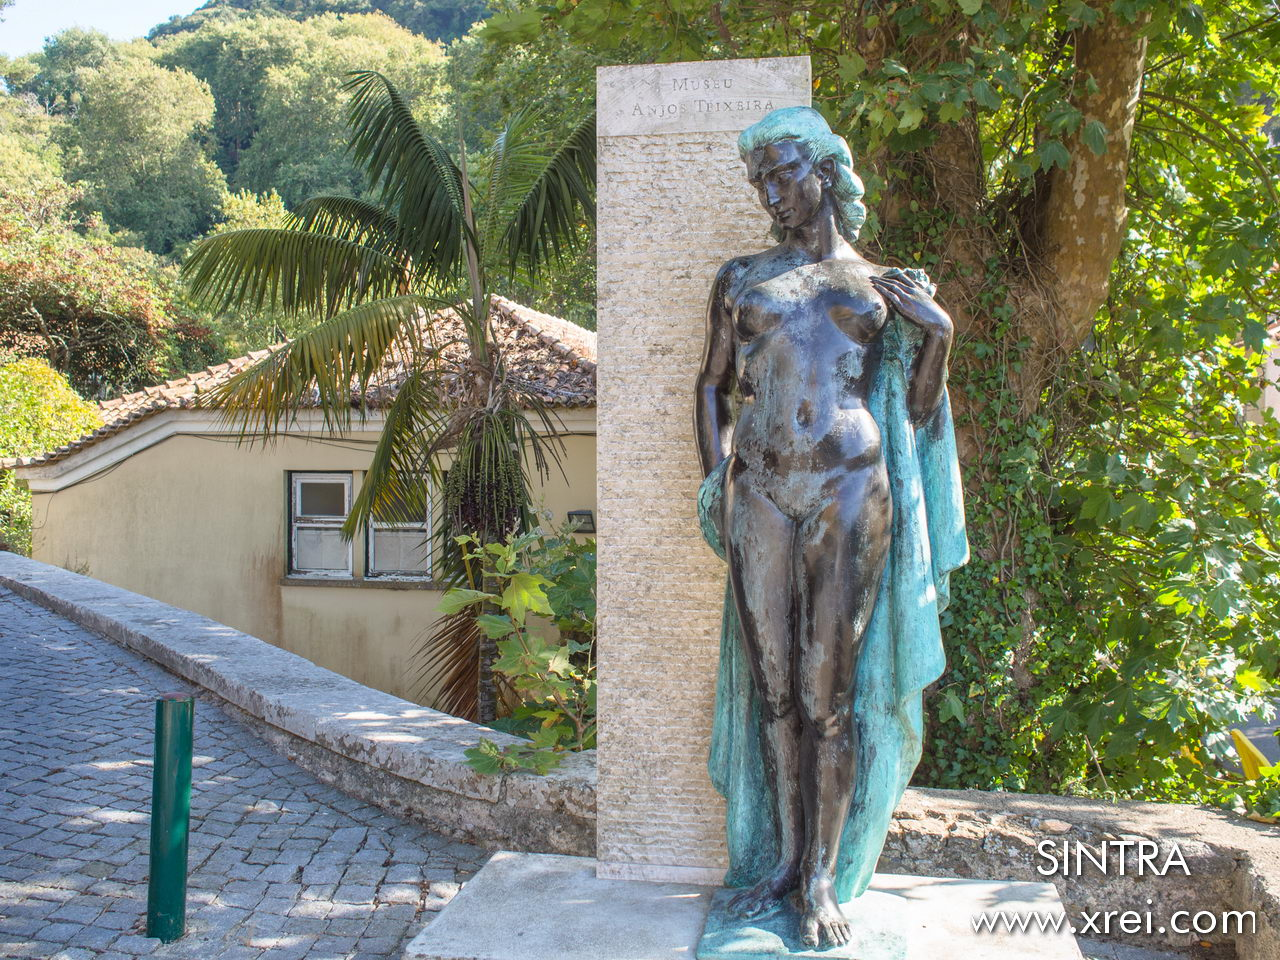 Museu Anjos Teixeira is a museum dedicated to two sculptors, Artur Anjos Teixeira and Pedro Anjos Teixeira who work on the themes of human and animal anatomy, work, freedom, professions, the female condition and historical and religious figures